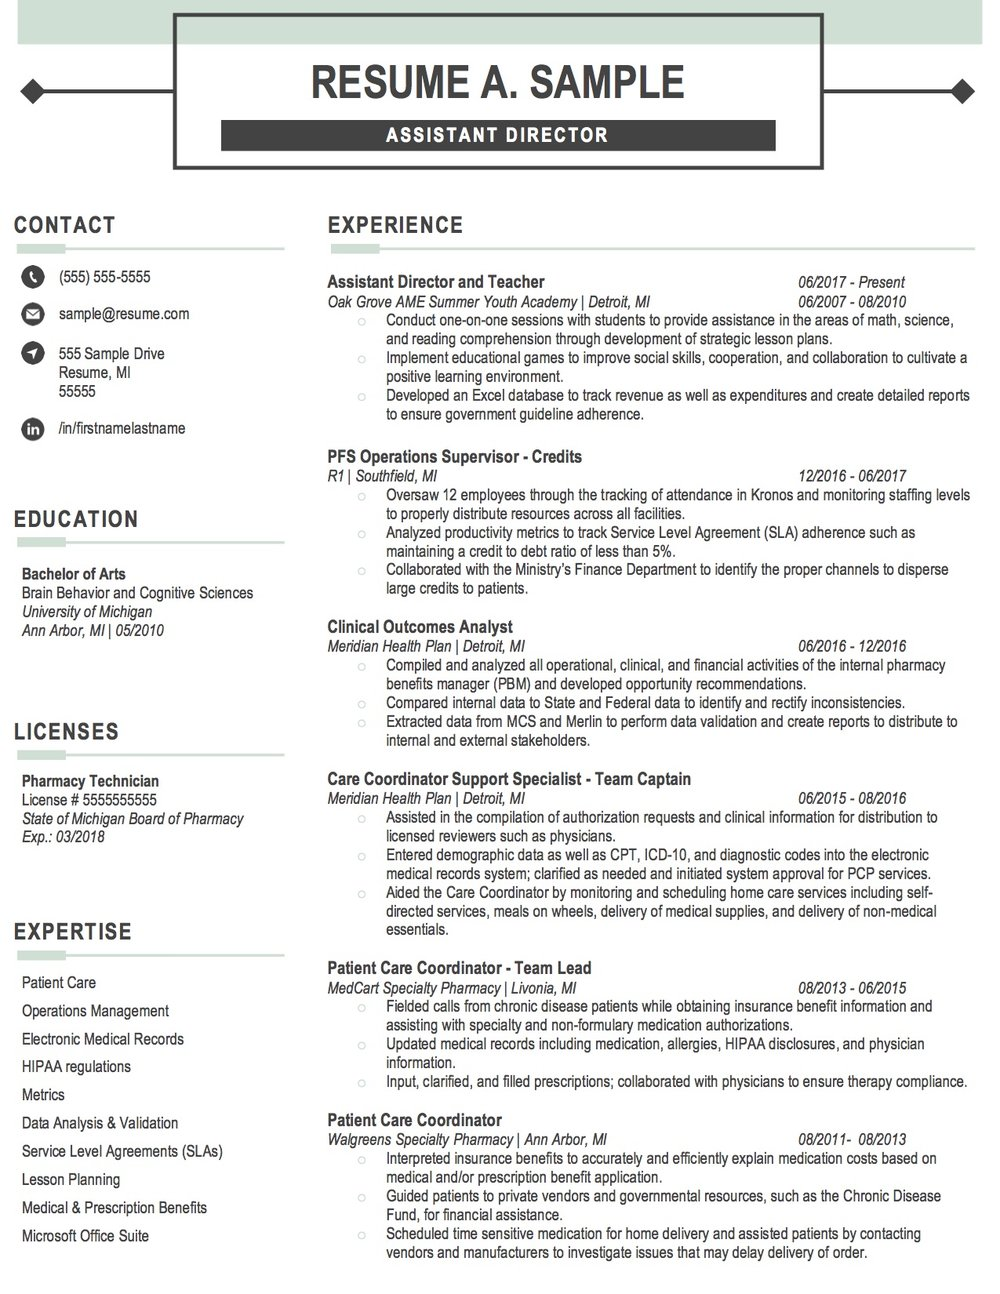 Client Resume #15. Click to Enlarge.